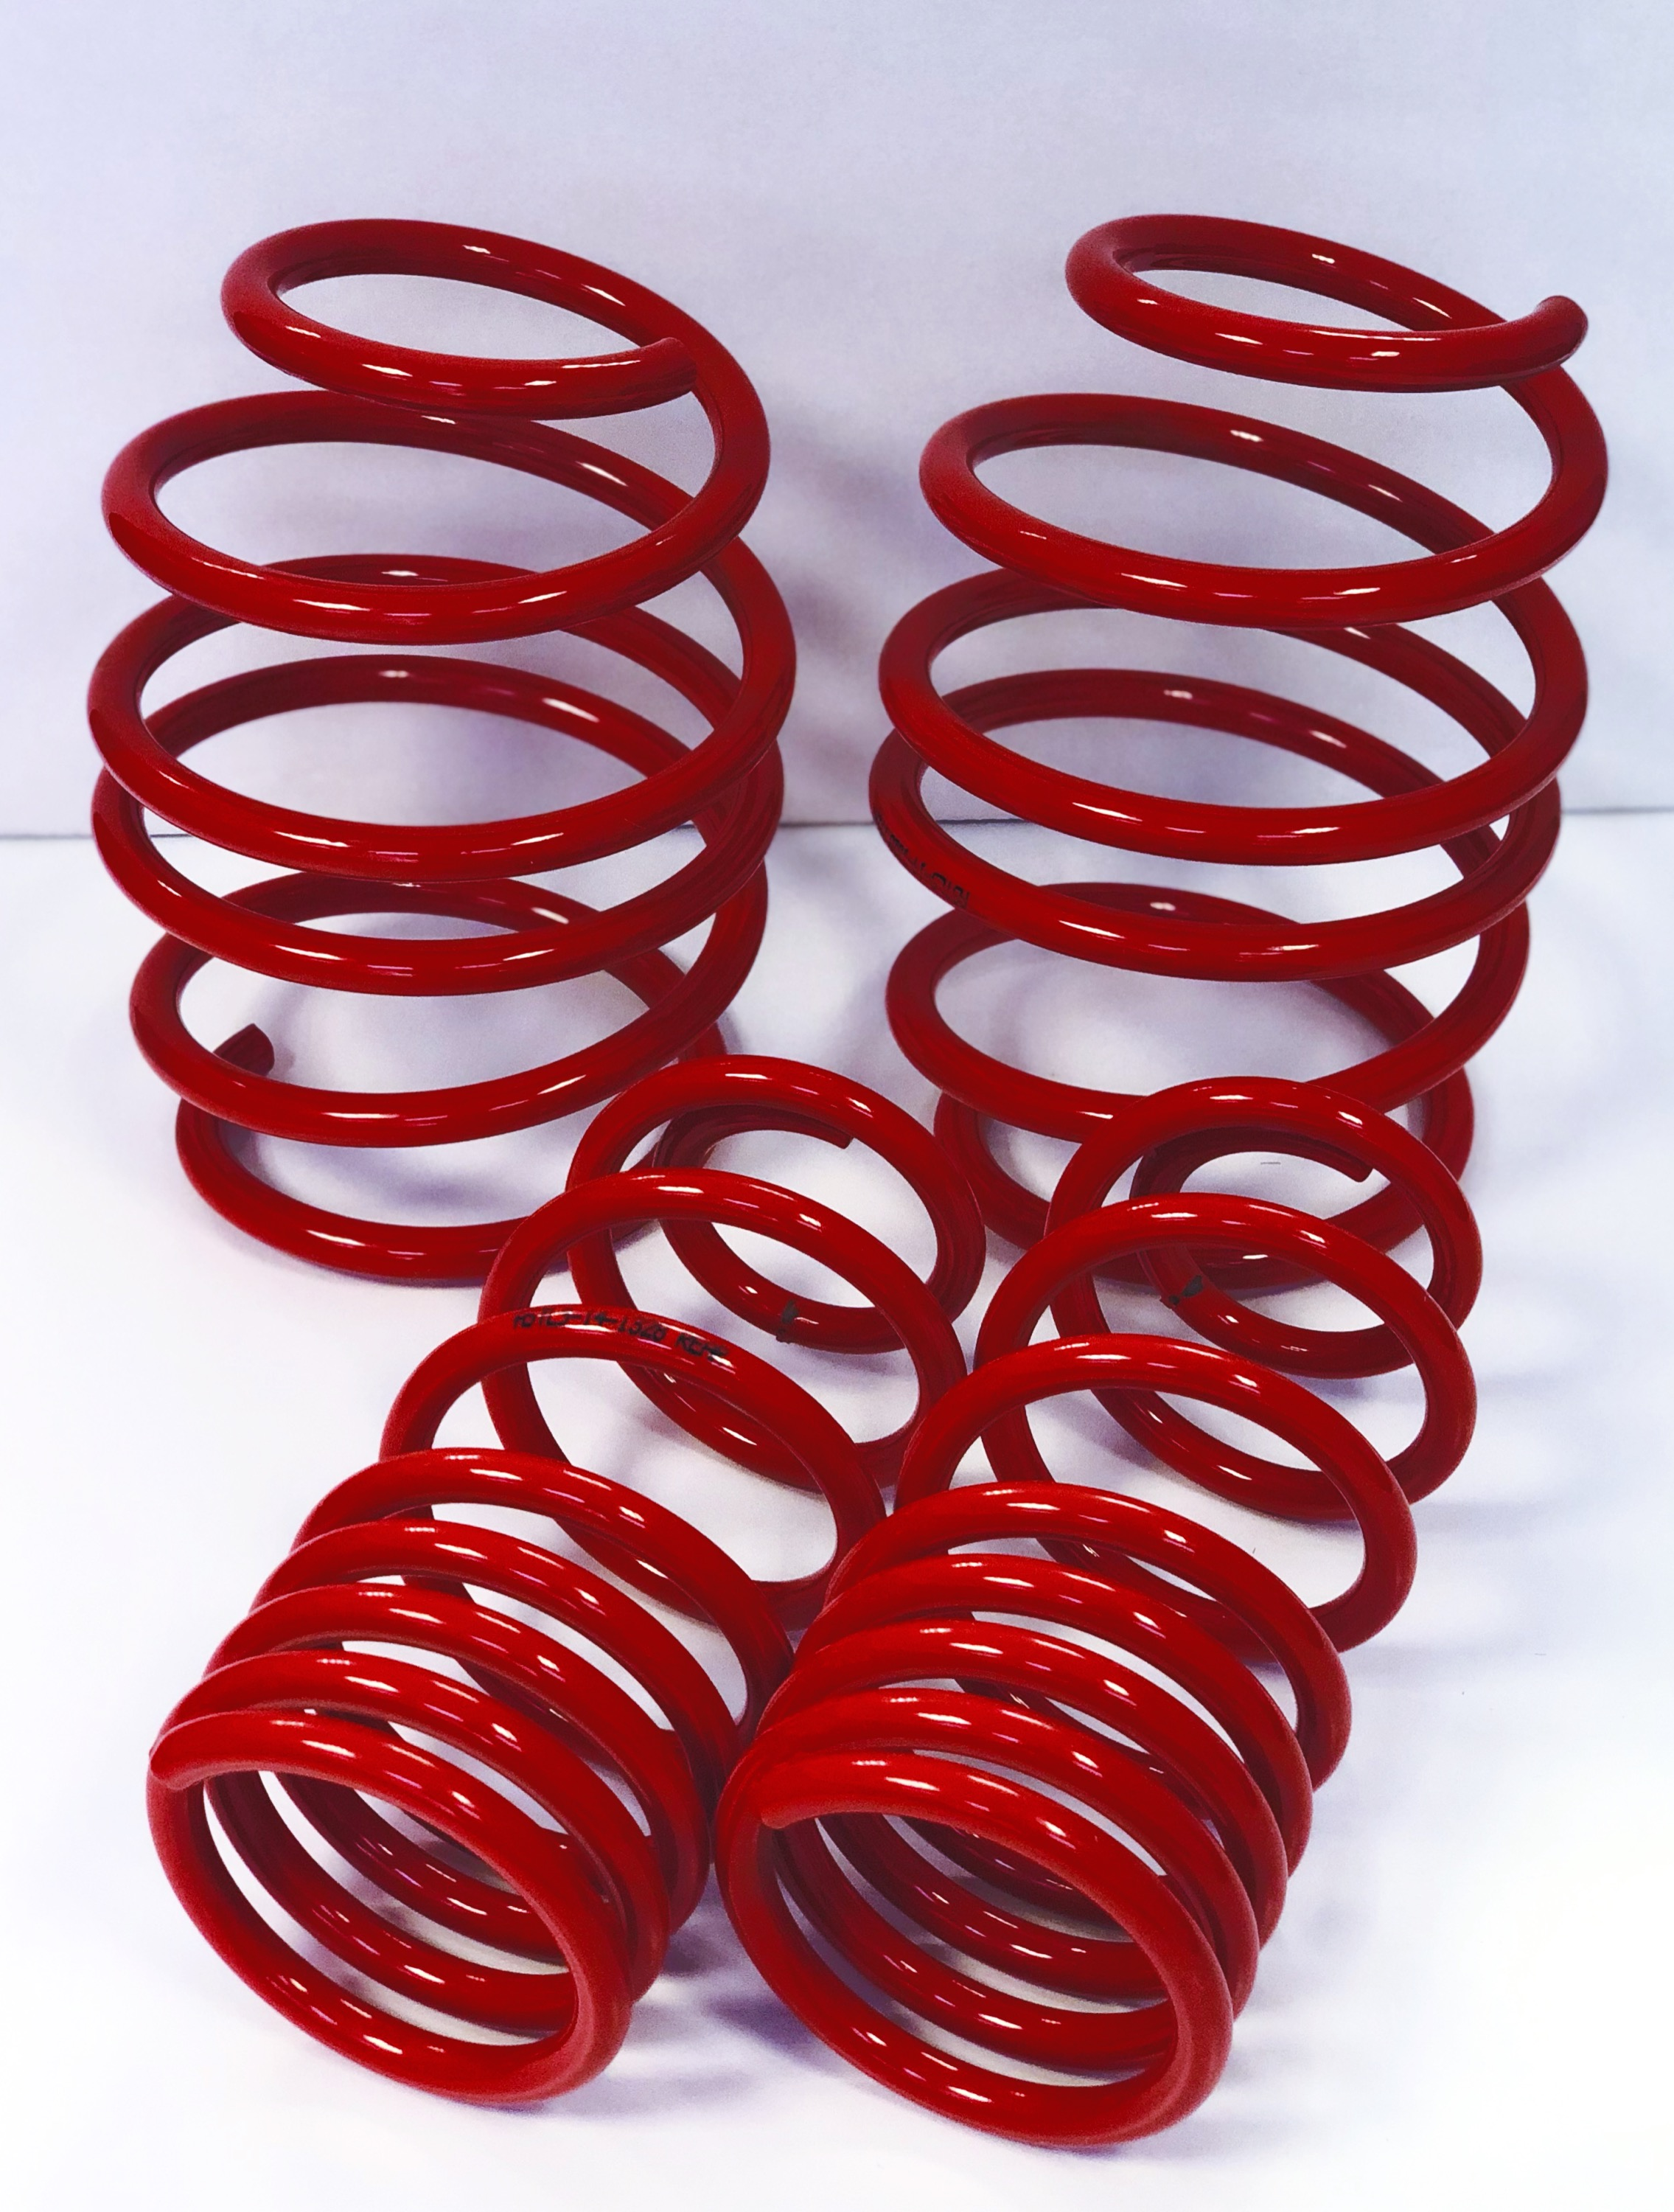 Volkswagen POLO AST Suspension Lowering Springs 35/40